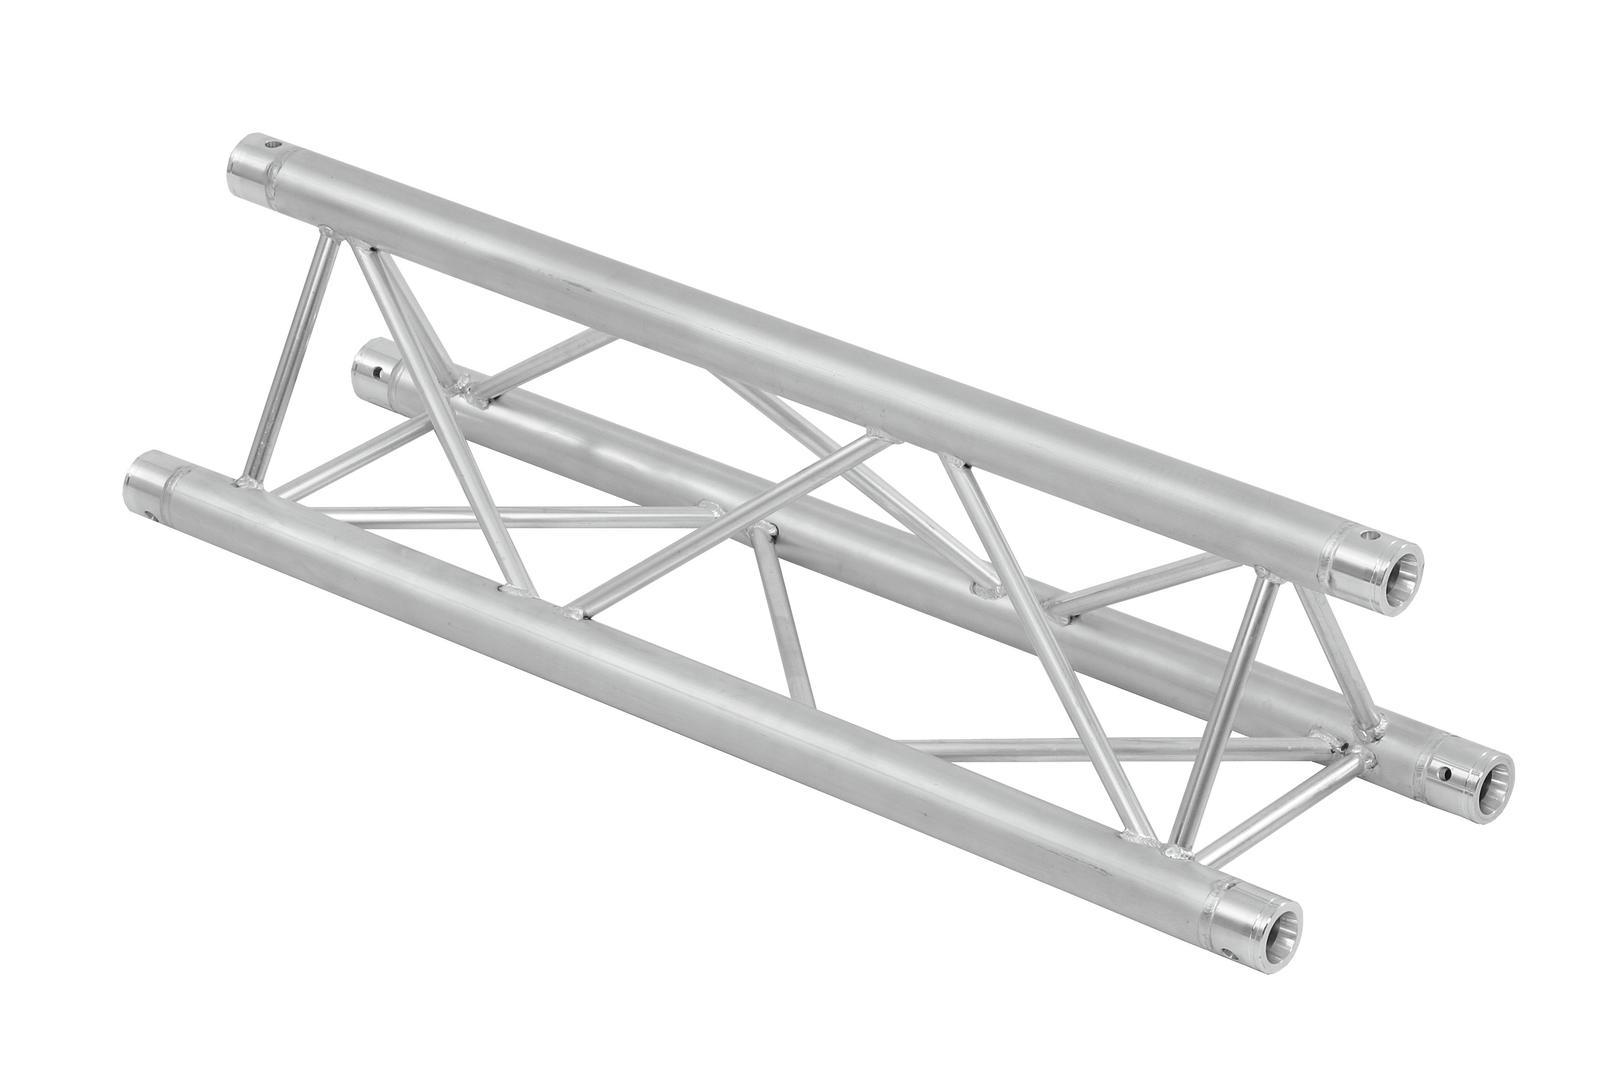 ALUTRUSS TRILOCK 6082-500 a 3 vie traverse